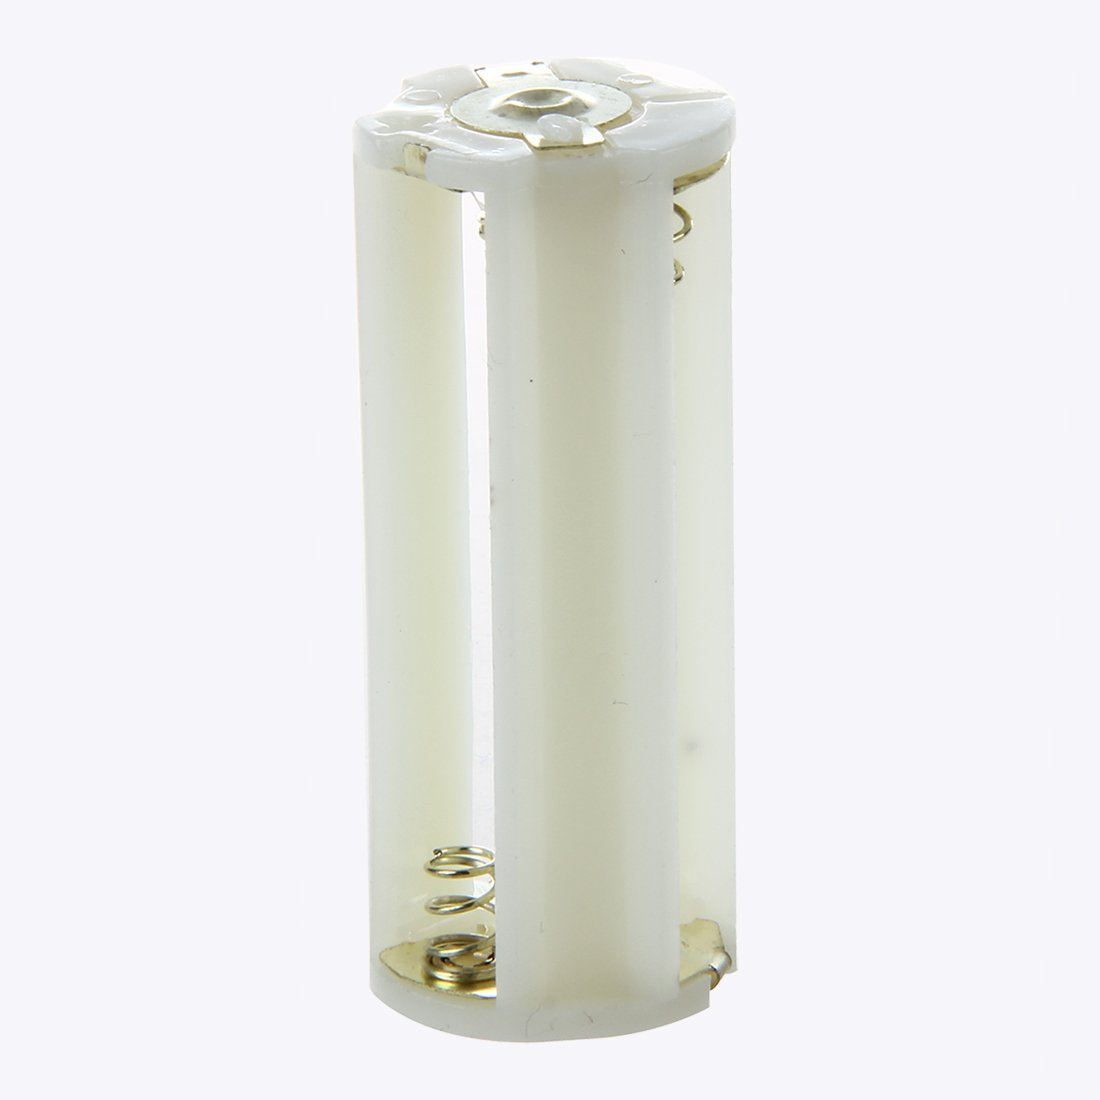 SODIAL (R) Flashlight Cylindrical 3 x AAA Battery Plastic Holder Box 5Pcs by SODIAL(R) (Image #2)